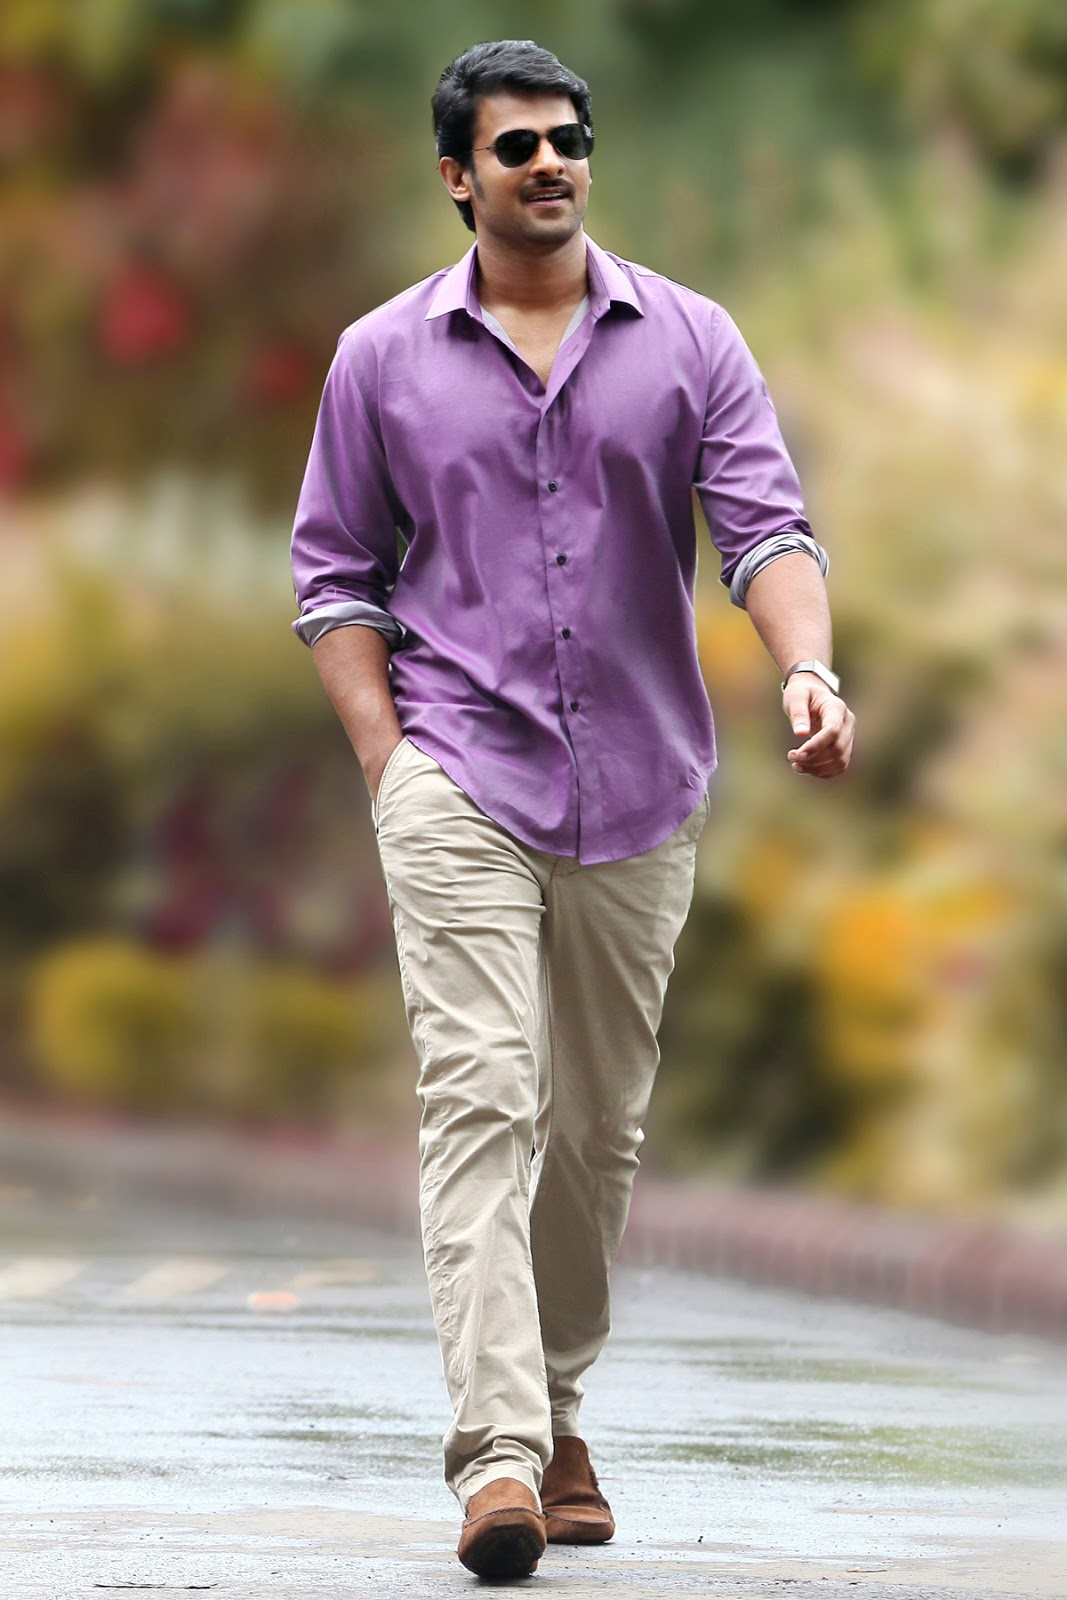 prabhas latest hd wallpapers | hd wallpapers (high definition